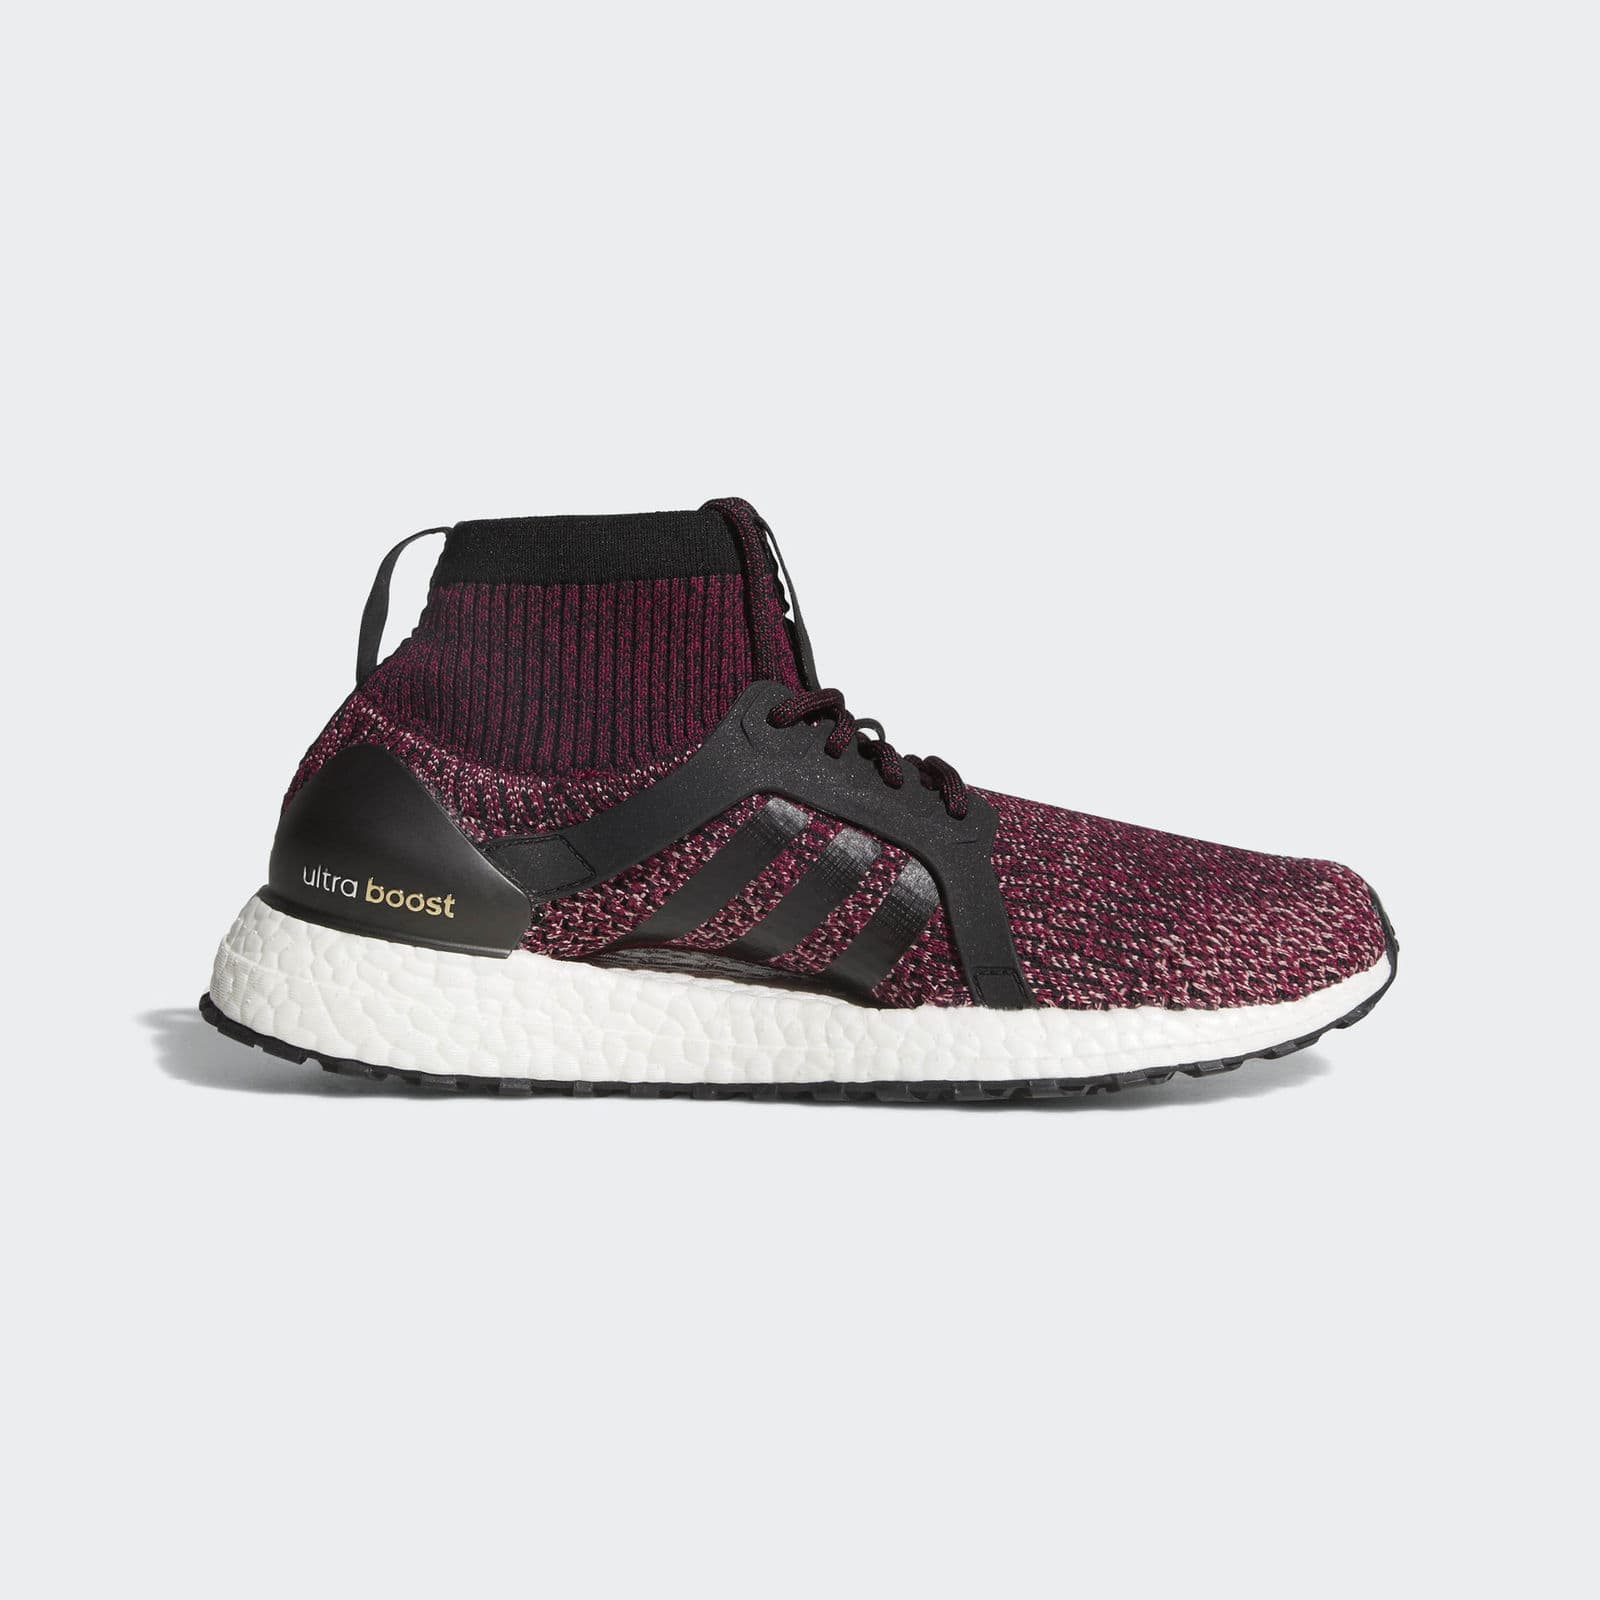 2e8da57edec44 adidas Ultraboost  Women s X Clima or X All Terrain Shoes ...